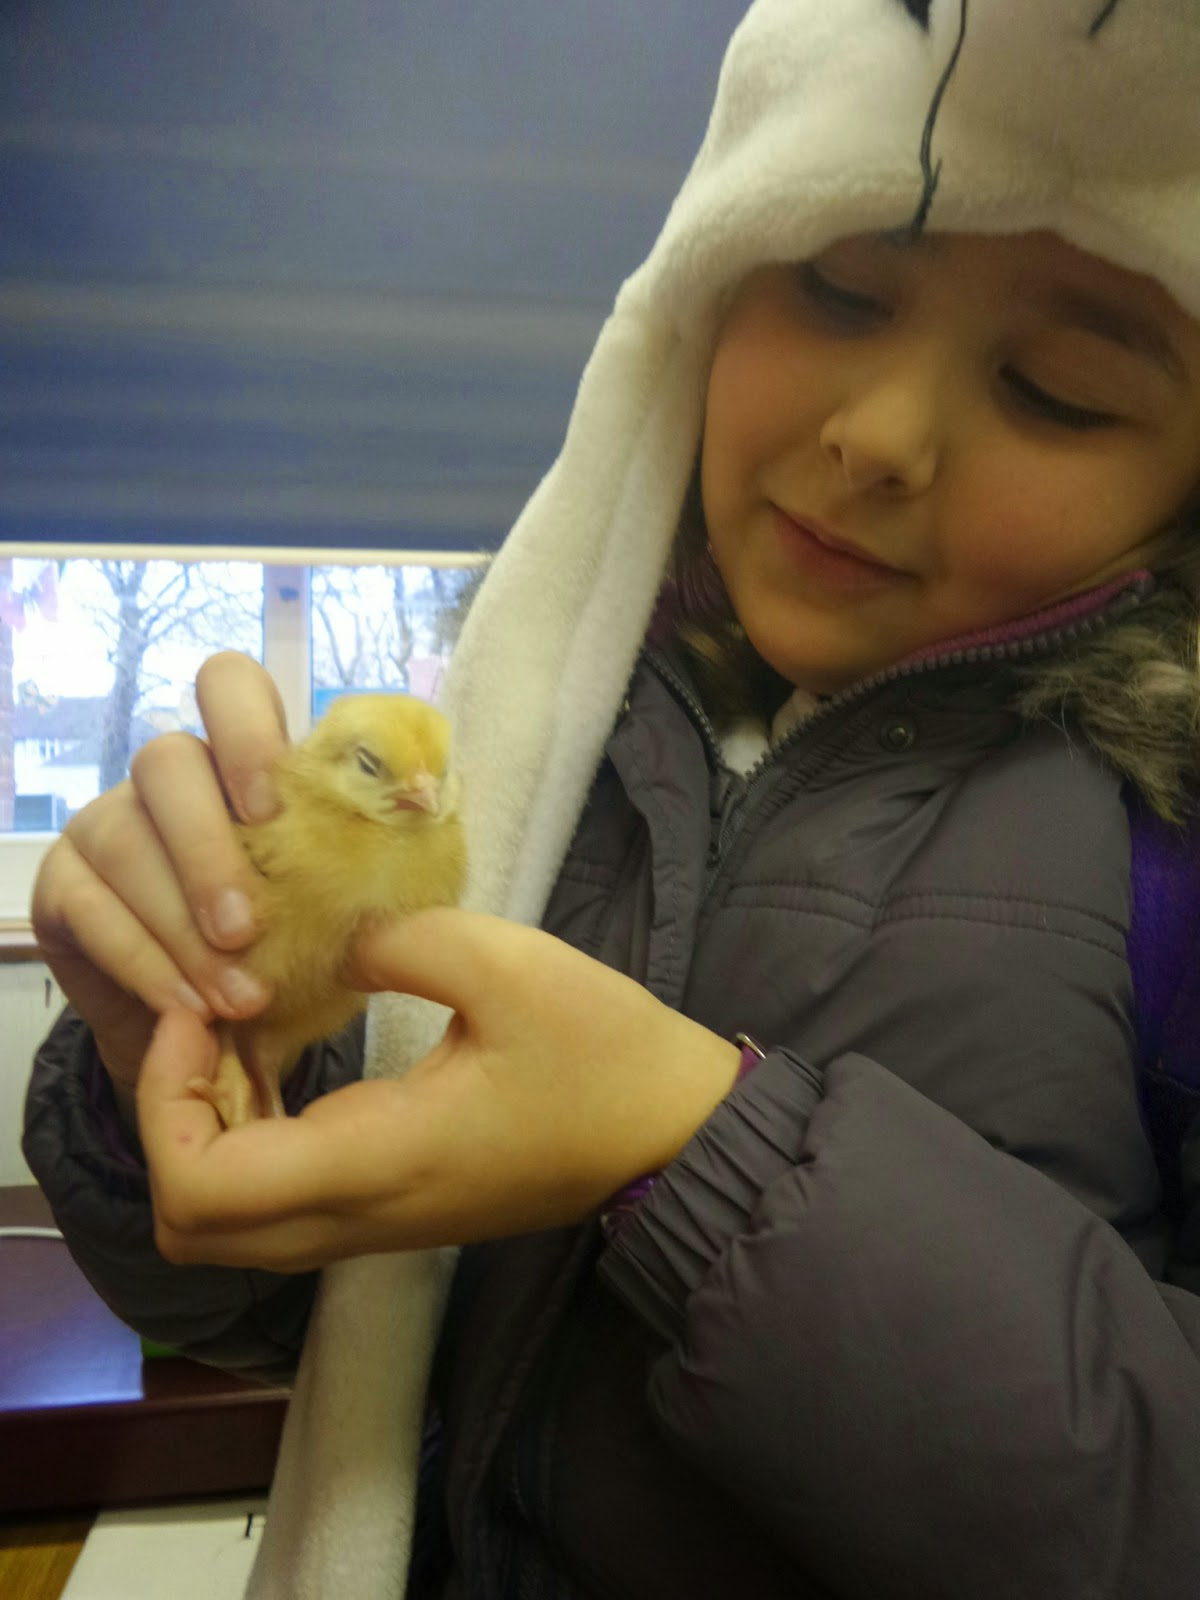 Top Ender holding a Little Baby Chick